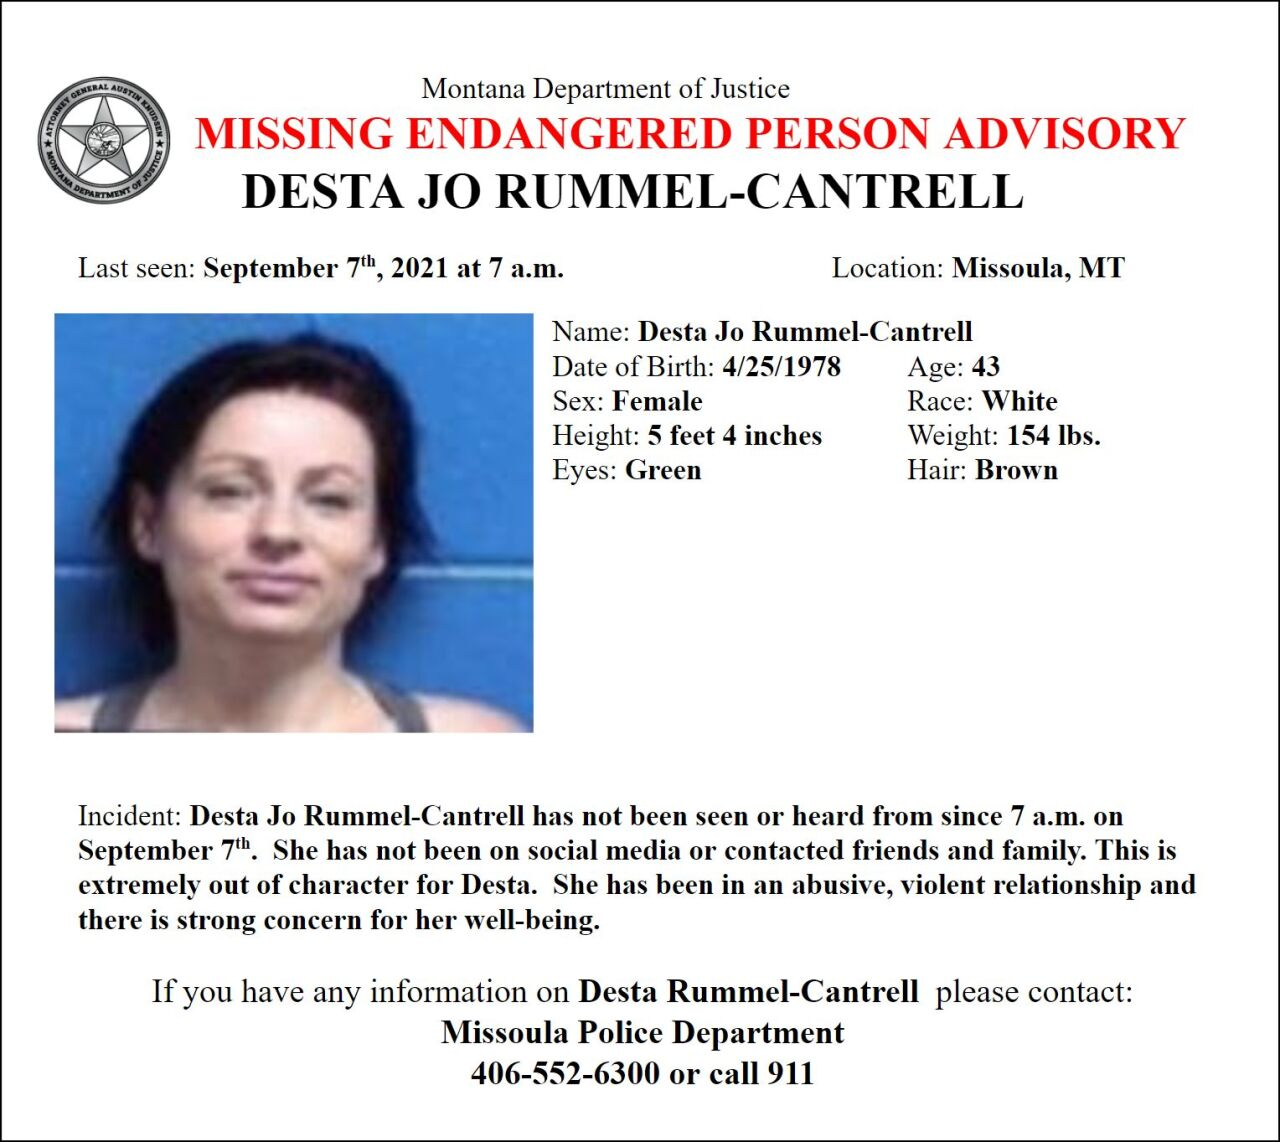 Missing-Endangered Person Advisory has been issued for Desta Jo Rummel-Cantrell